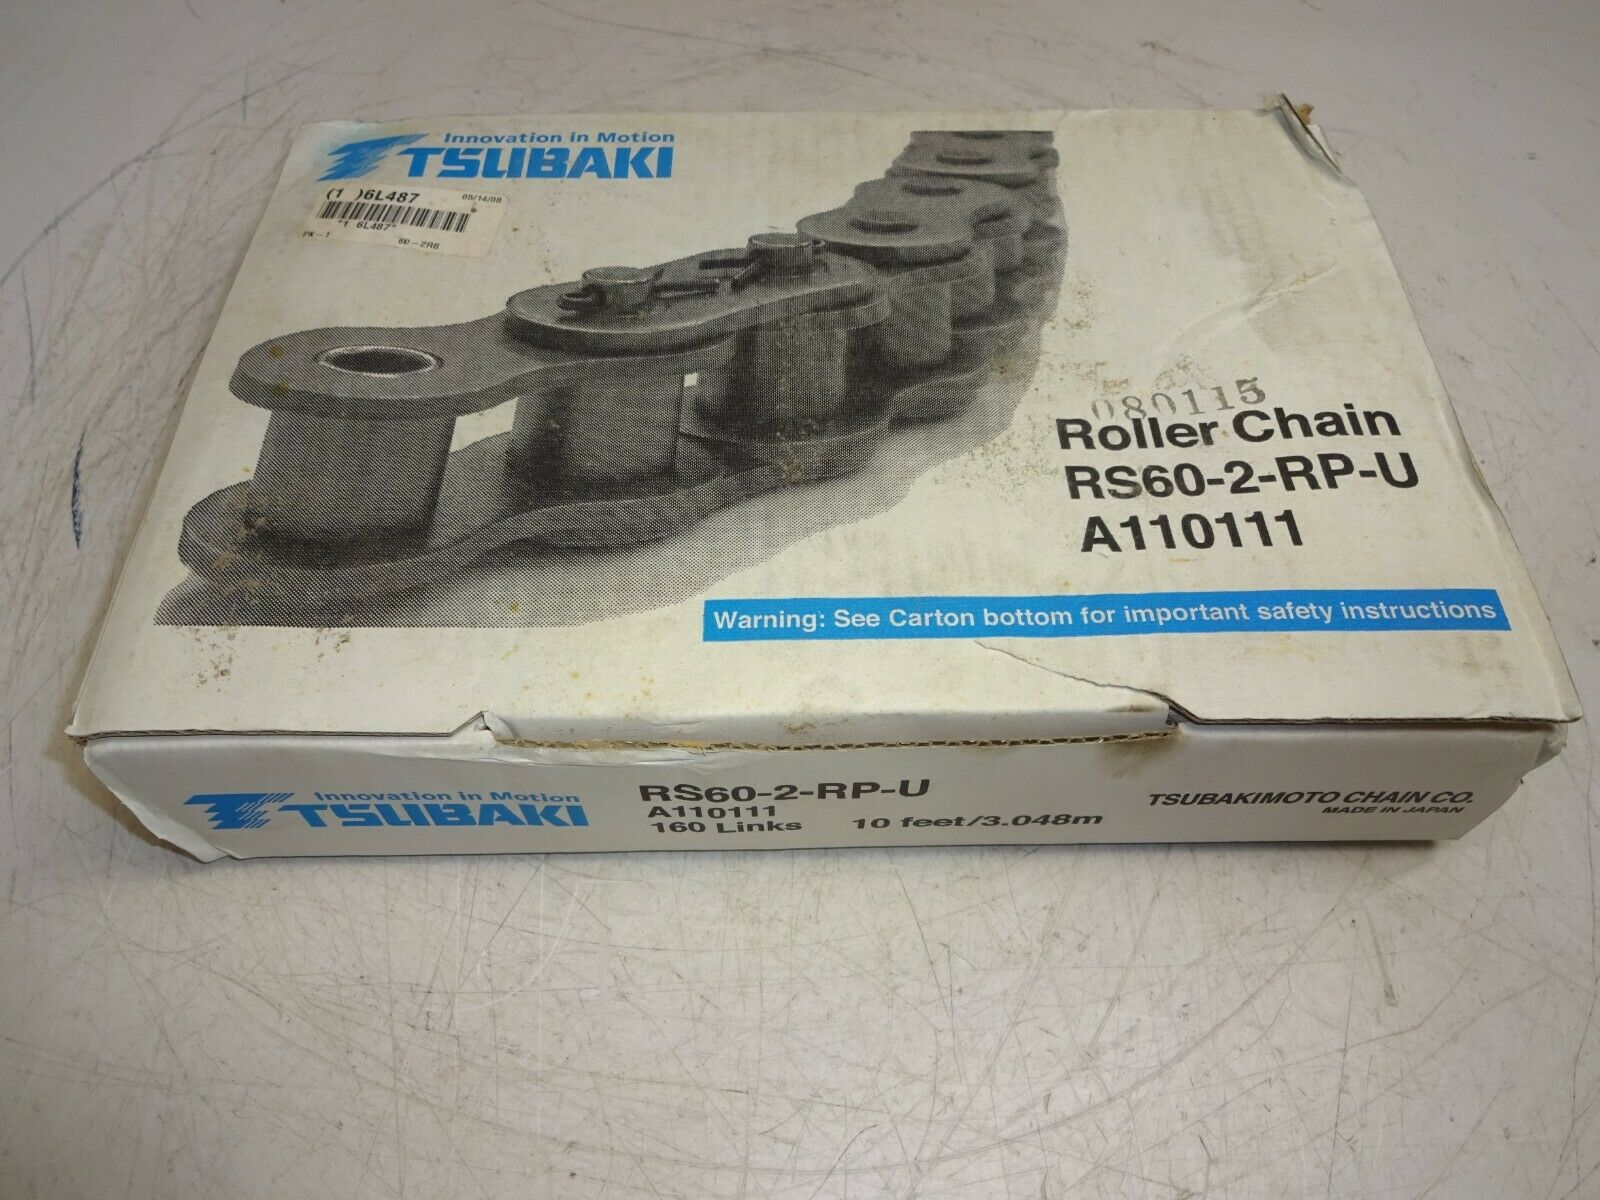 Tsubaki Rs60-2-rp-u Roller Chain 10ft 160 Links RS602RPU